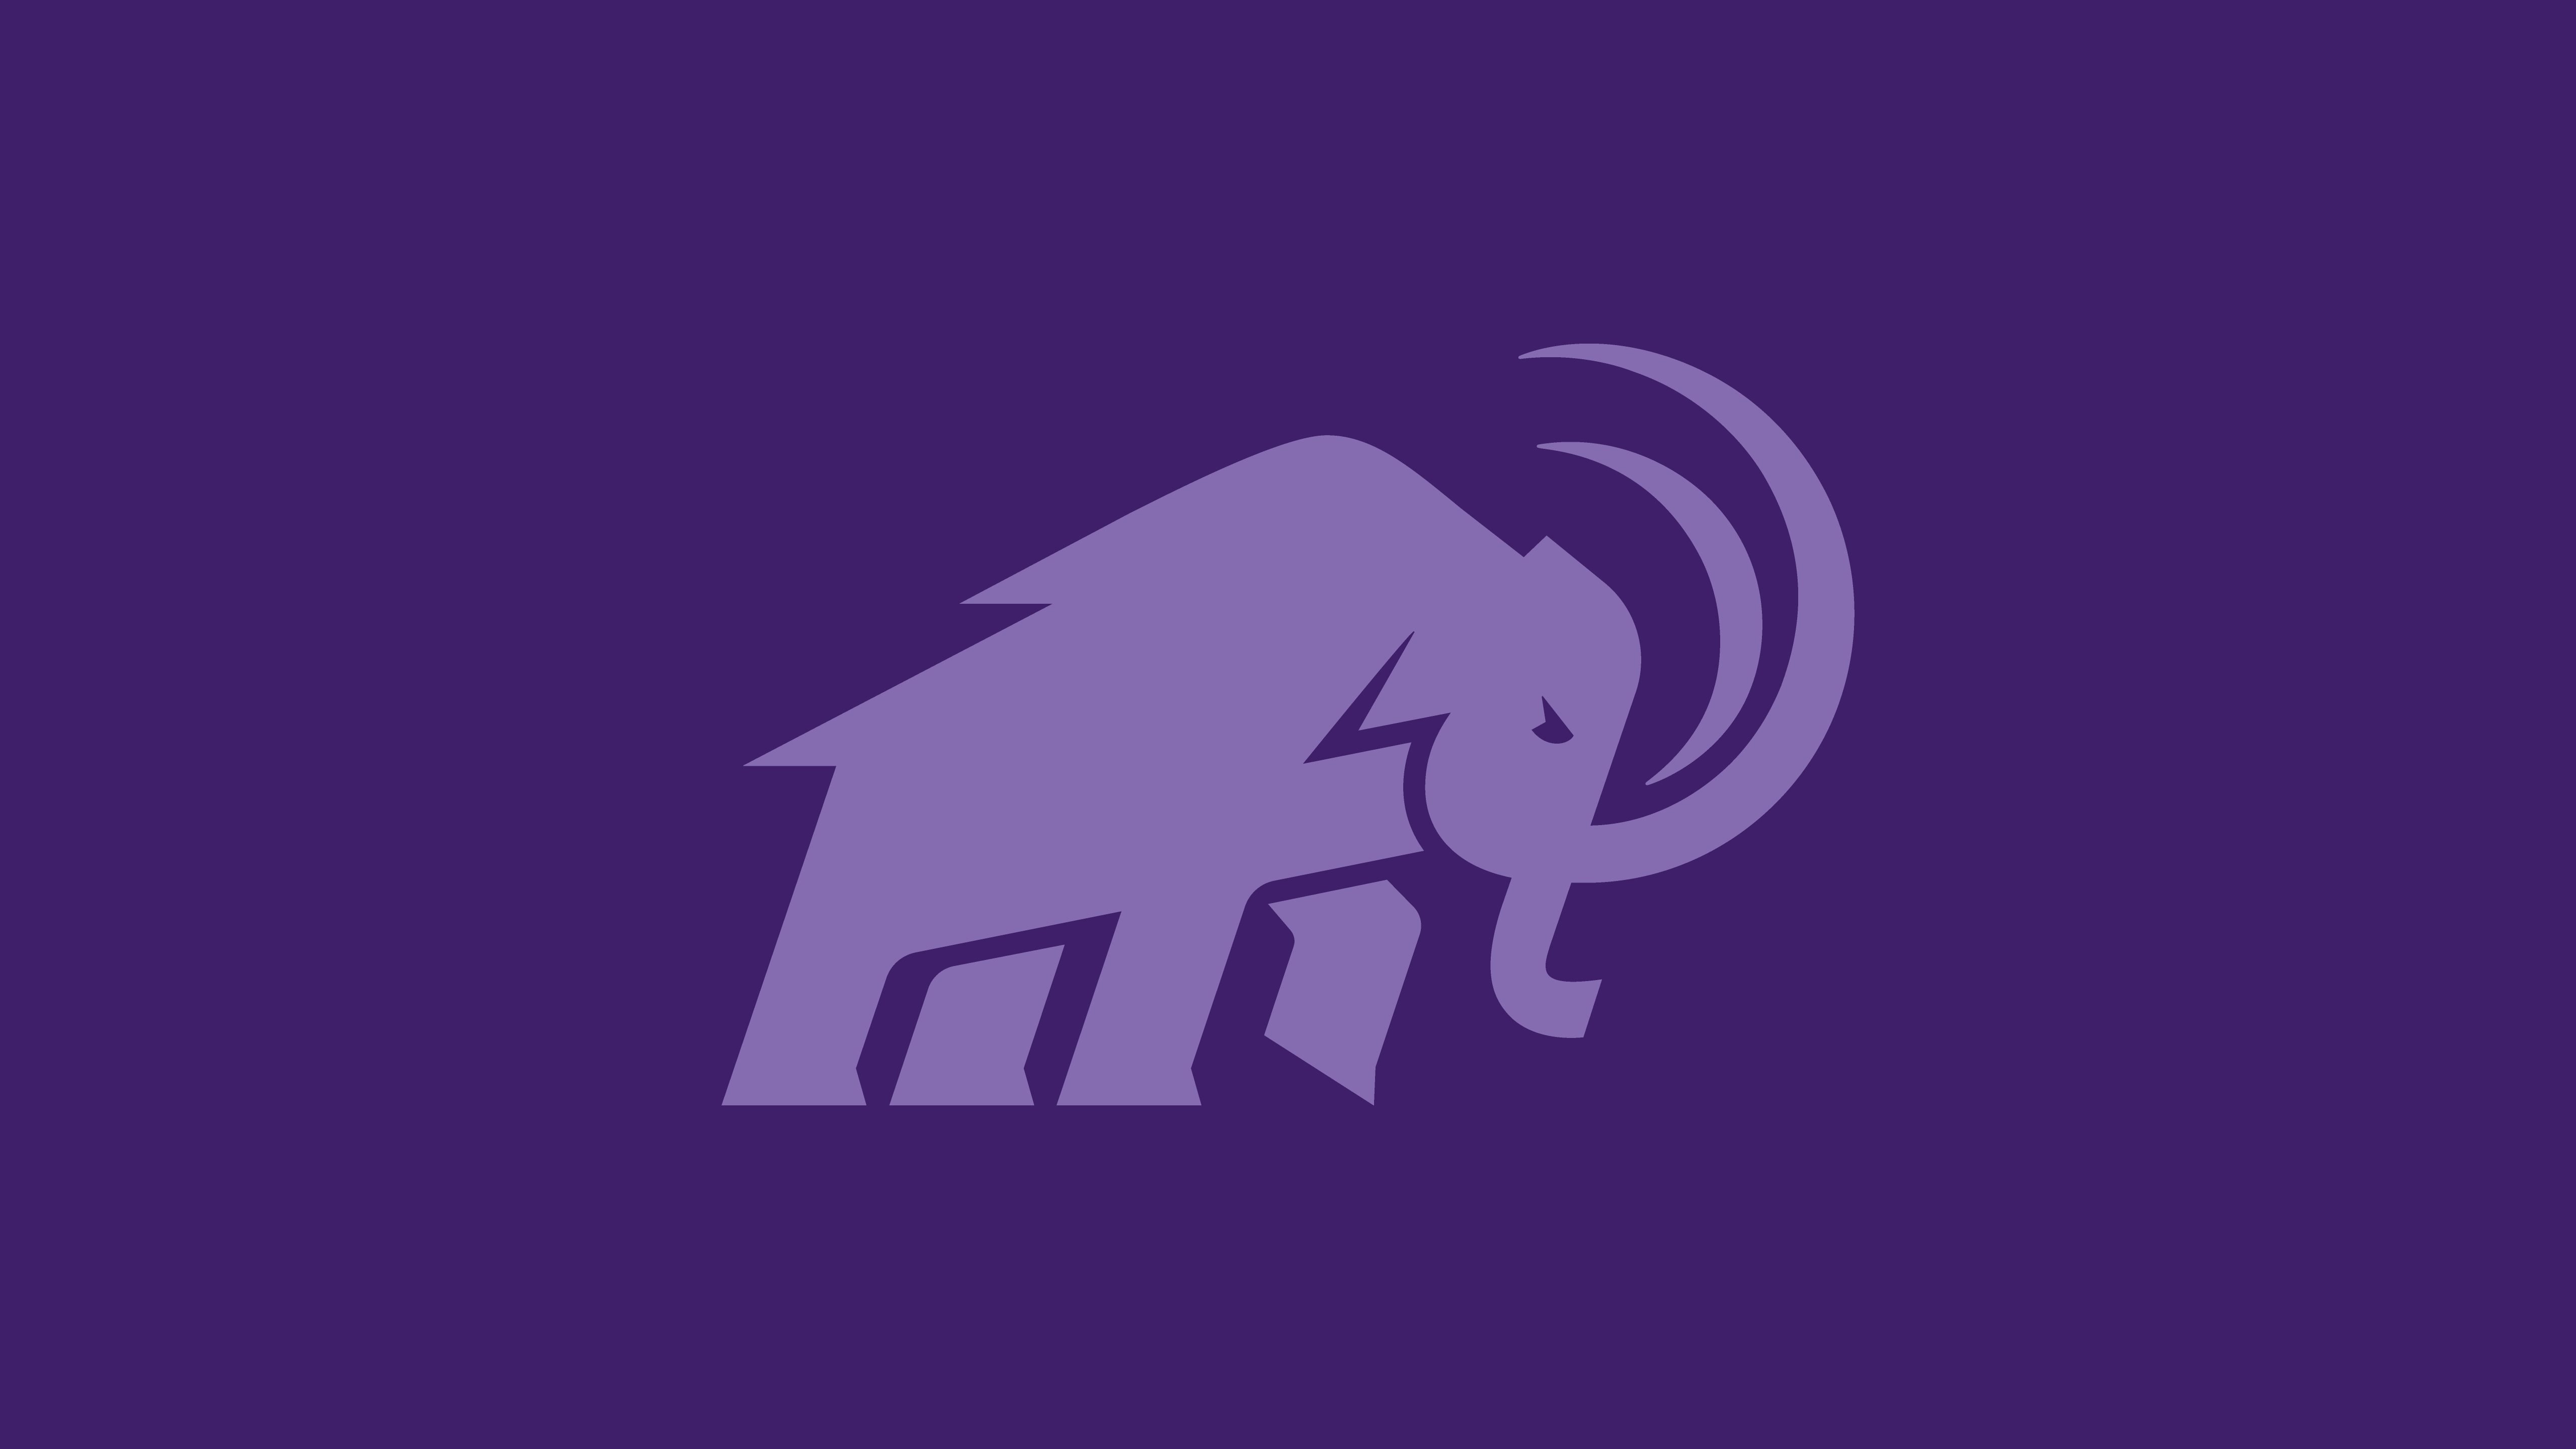 Light purple mammoth logo on dark purple background